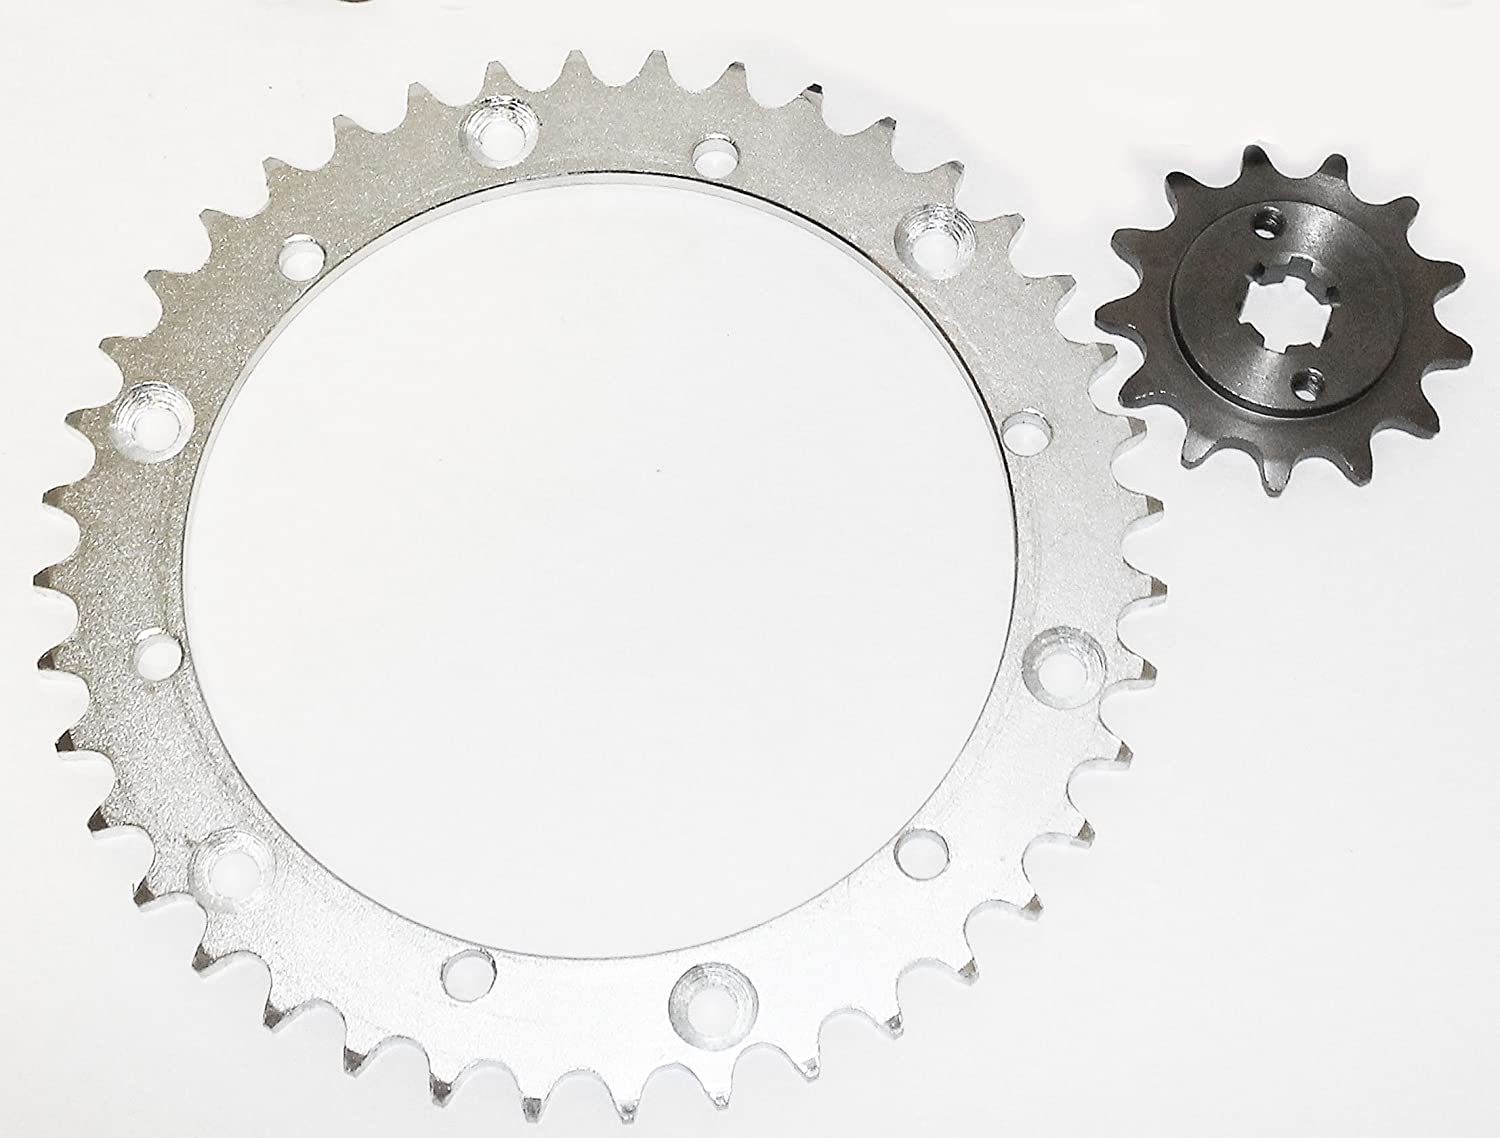 2000-2002 fits Yamaha YFS 200 Blaster 13 Tooth Front /& 40 Tooth Rear Silver Sprocket